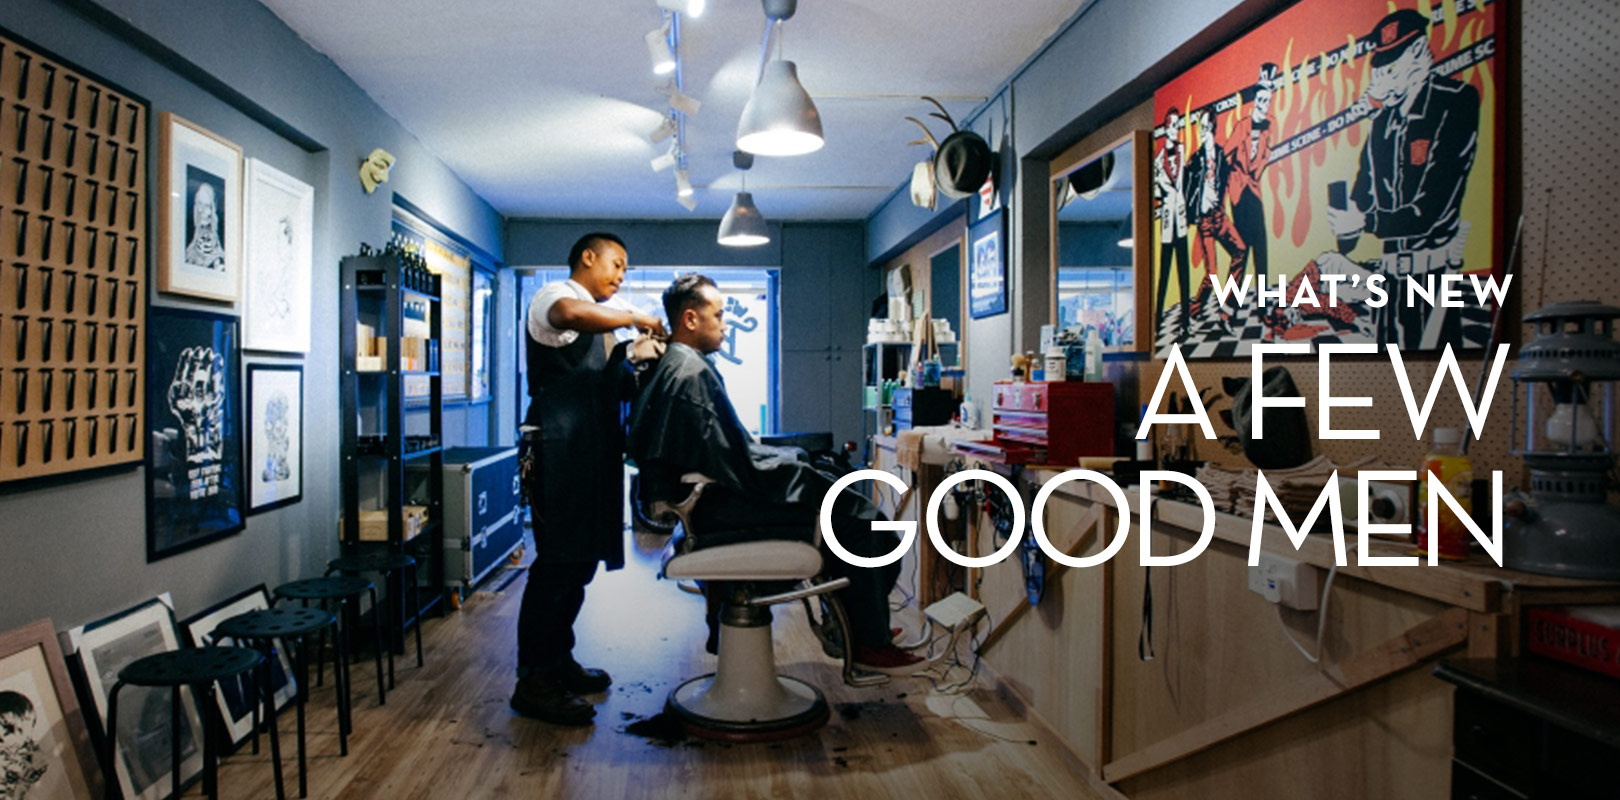 A Few Good Men is a present day twist on the old school classic barbershop